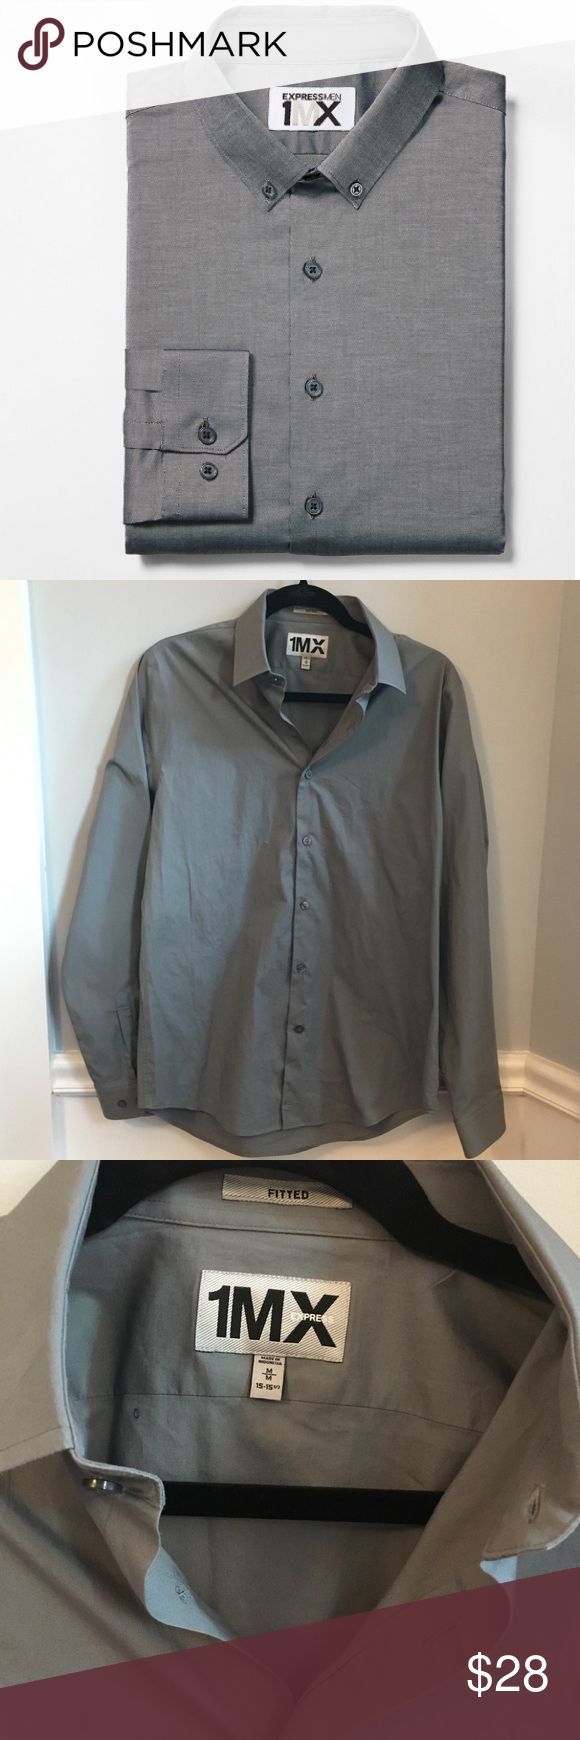 "1MX Express Men's Gray Buttondown Dress Shirt M Fitted Medium men's grey non iron shirt by Express.  Excellent preloved condition. No issues to note. Stock photos for price and style reference only. Pls feel free to make a reasonable offer! Retails for $70 Sleeve 26.5"" armpit to armpit about 21"" Express Shirts Dress Shirts"